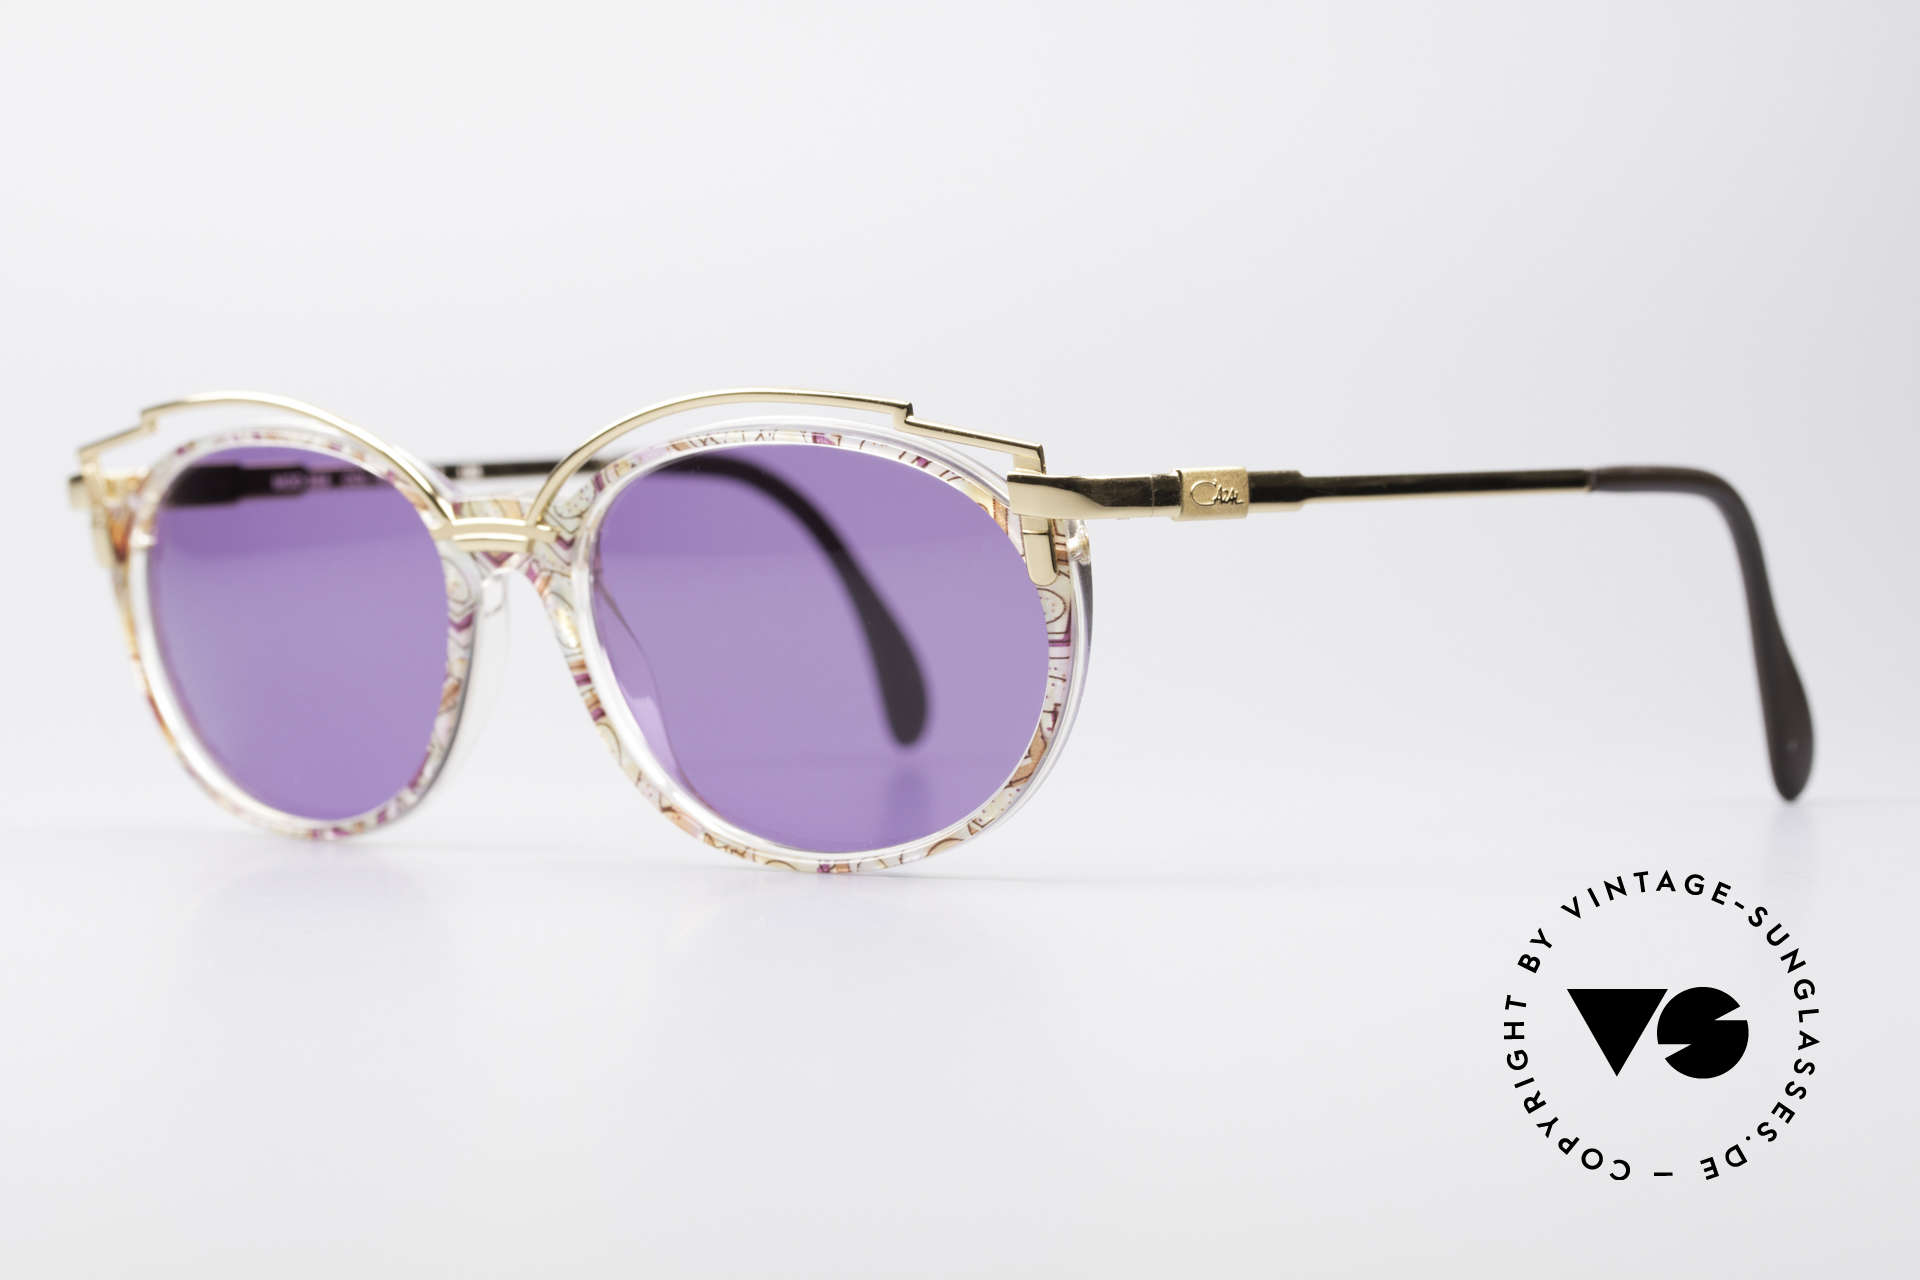 Cazal 358 Rare 90's Vintage Sunglasses, the design looks even more spectacular with sun lenses, Made for Women